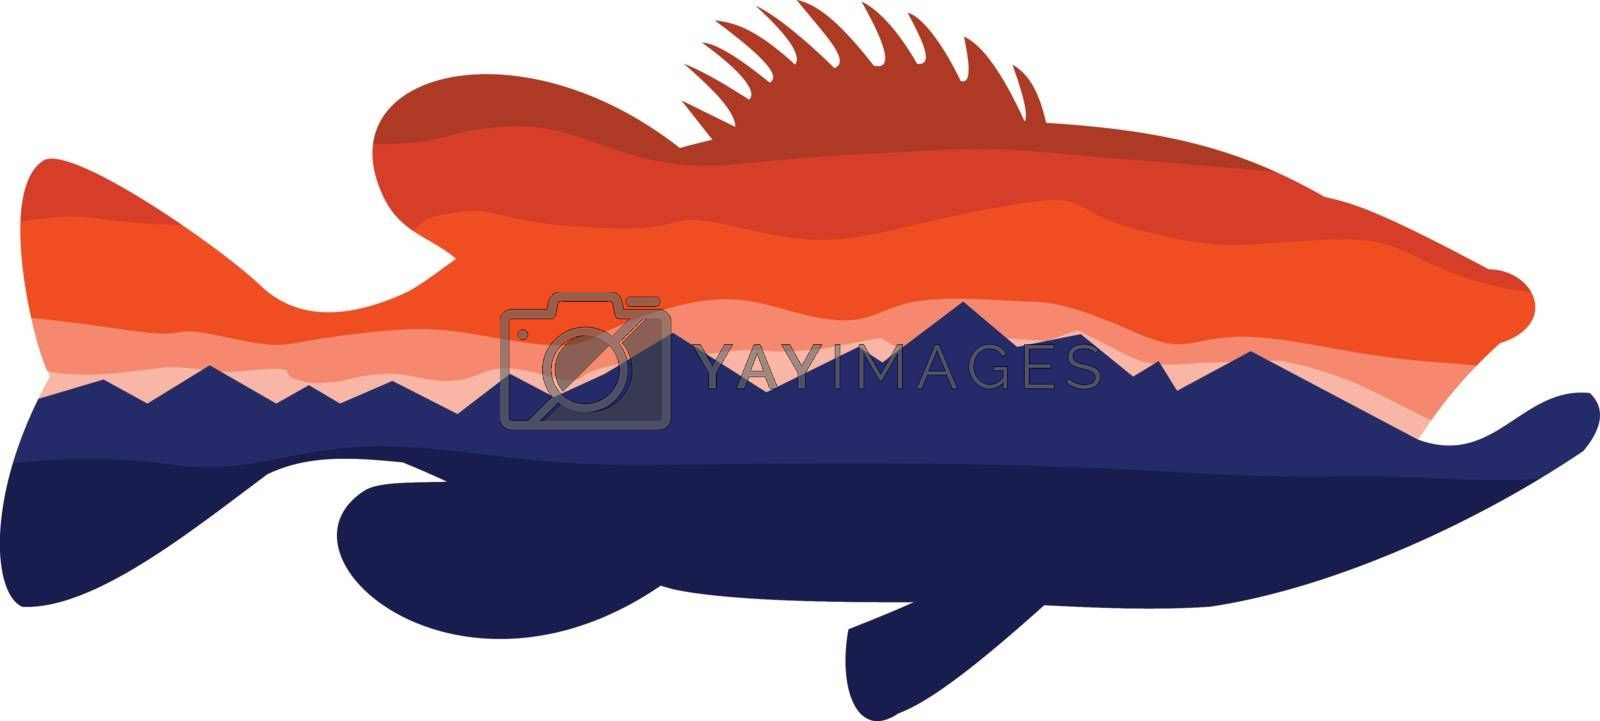 Retro style illustration of silhouette of a largemouth bass, a carnivorous freshwater gamefish in the Centrarchidae family, a species of black bass with mountains and sky inside silhouetted shape.